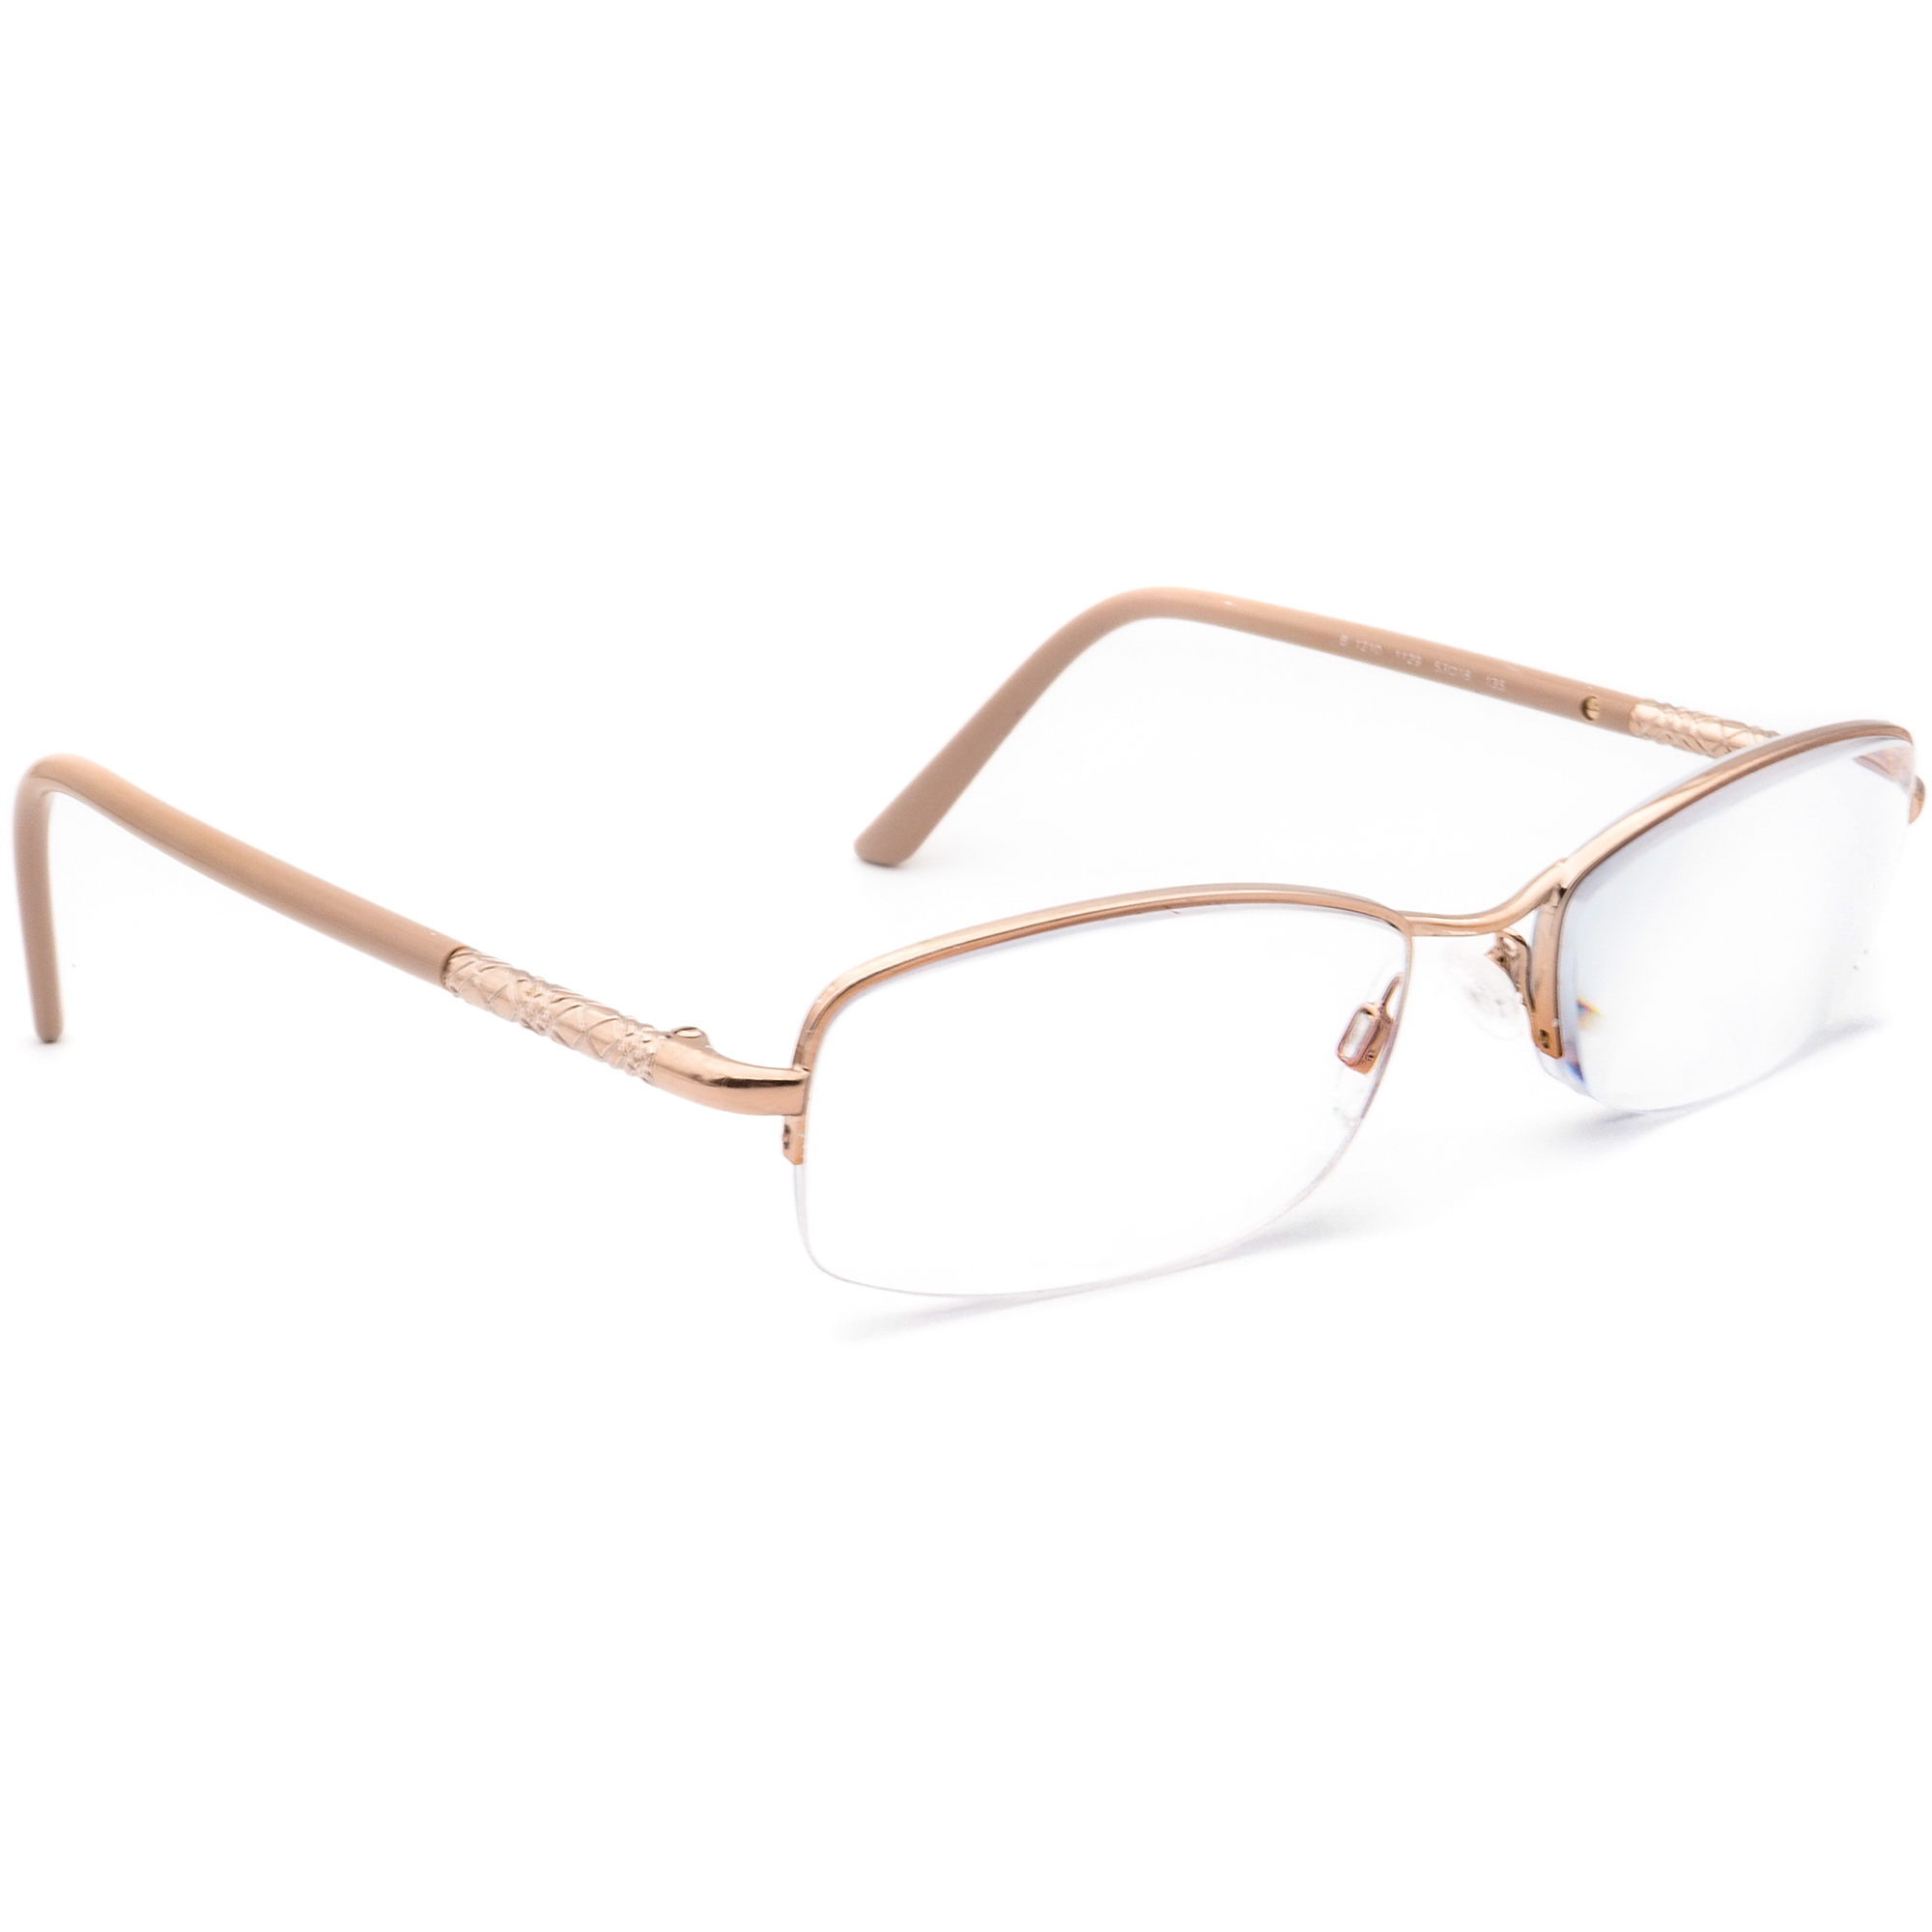 Burberry B 1210 1129  Eyeglasses